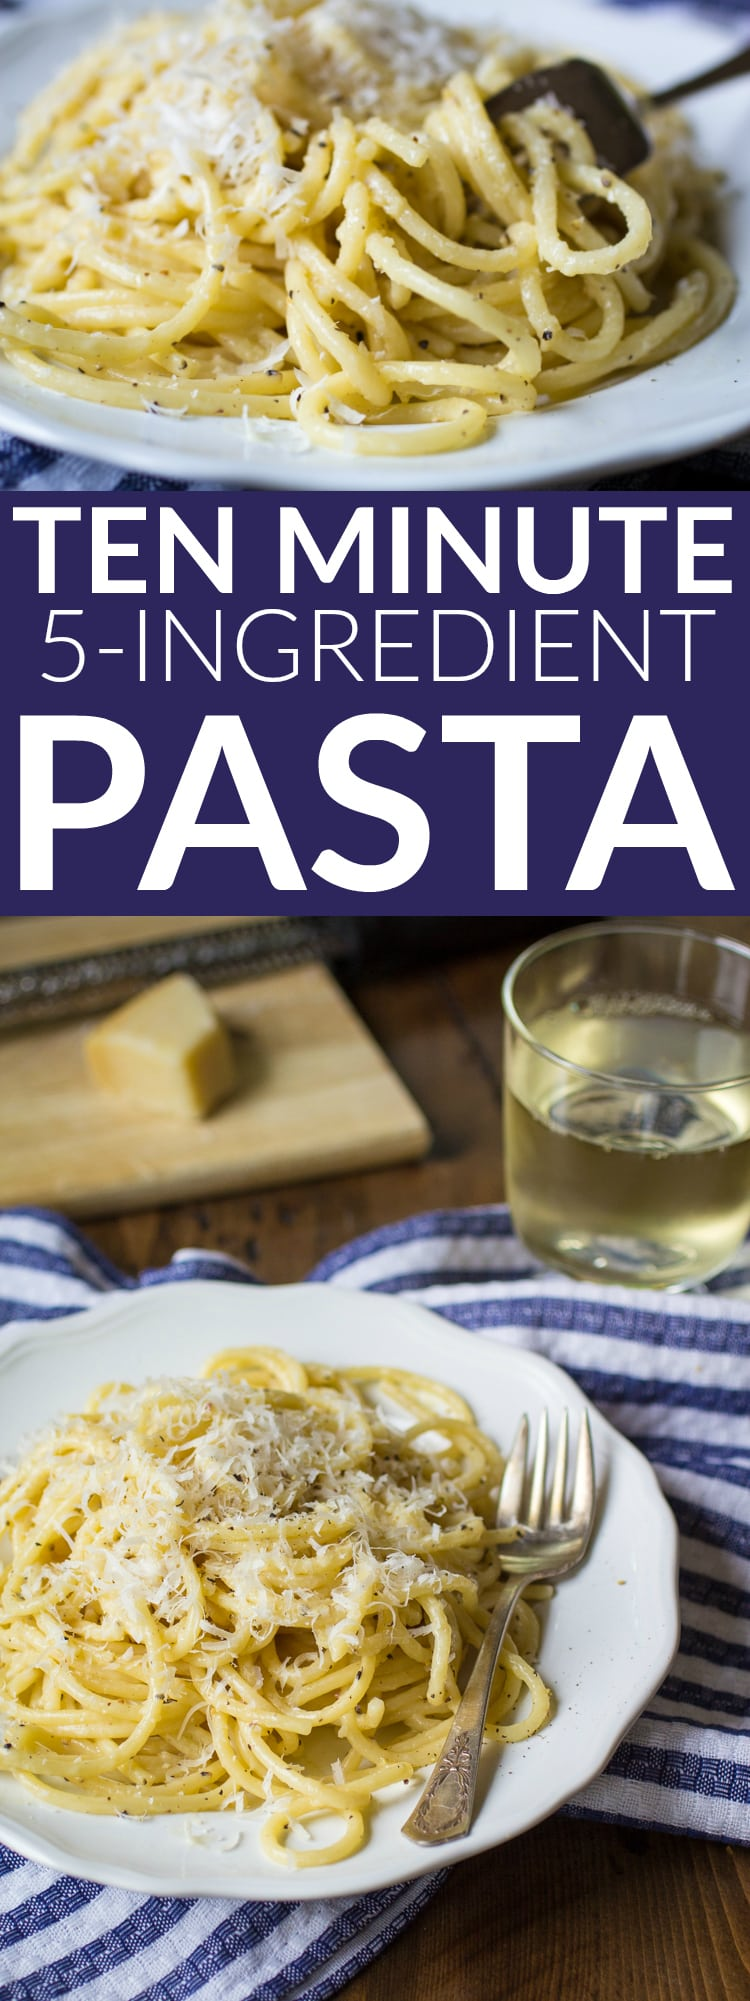 Pasta for one, in just ten minutes time! This